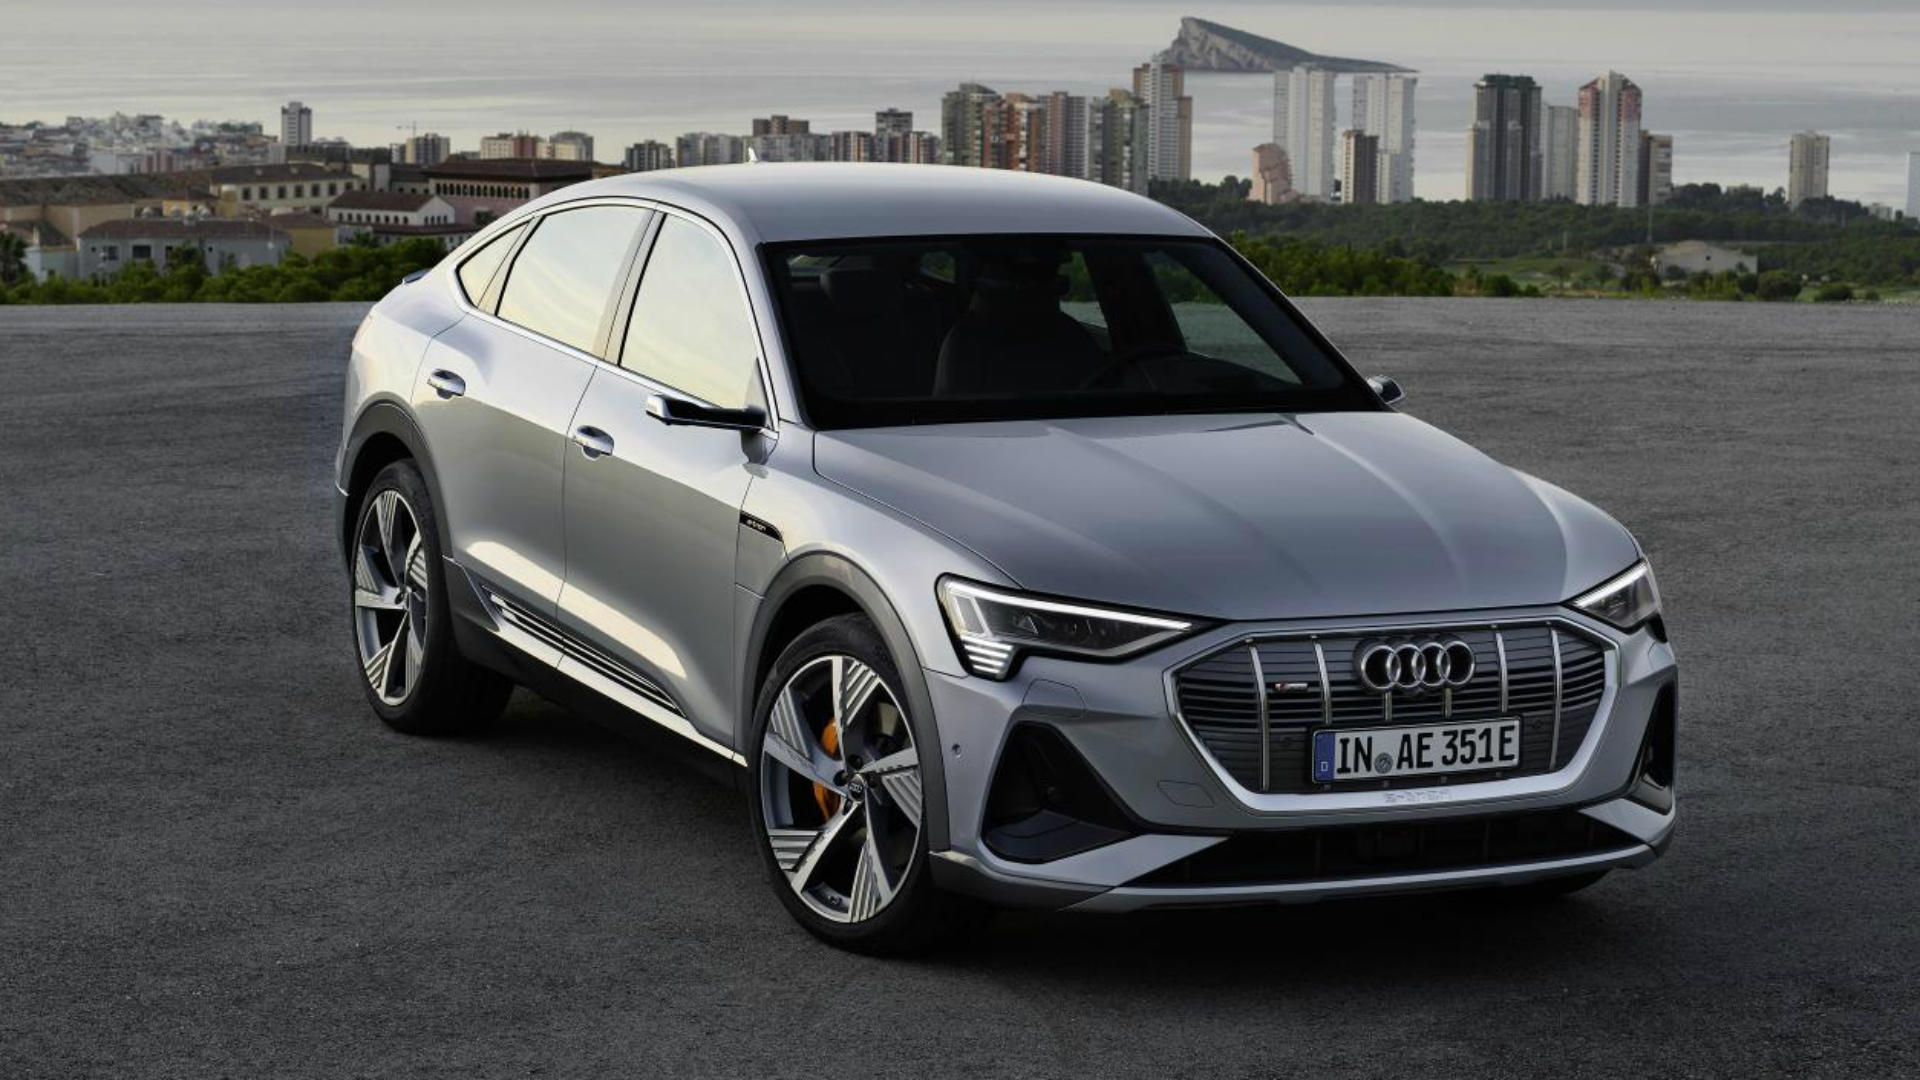 277 Best Cars images in 2020 | Soccer